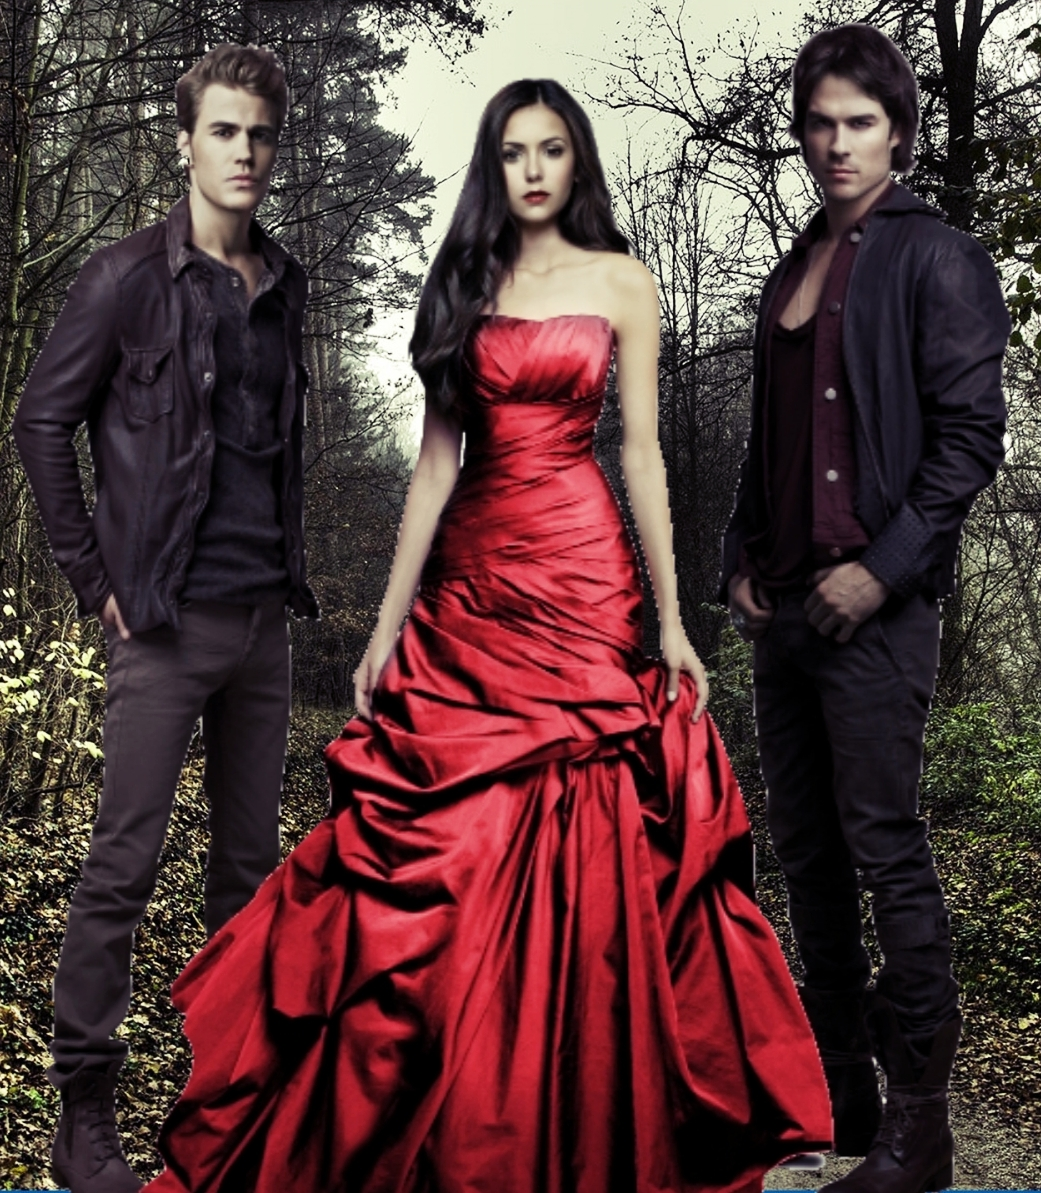 http://3.bp.blogspot.com/-EG5DG4iF75Q/UPoyvKpLDgI/AAAAAAAAALI/g23XnlvMcgg/s1600/The-Vampire-Diaries-Season-3-the-vampire-diaries-30466509-1041-1193.jpg